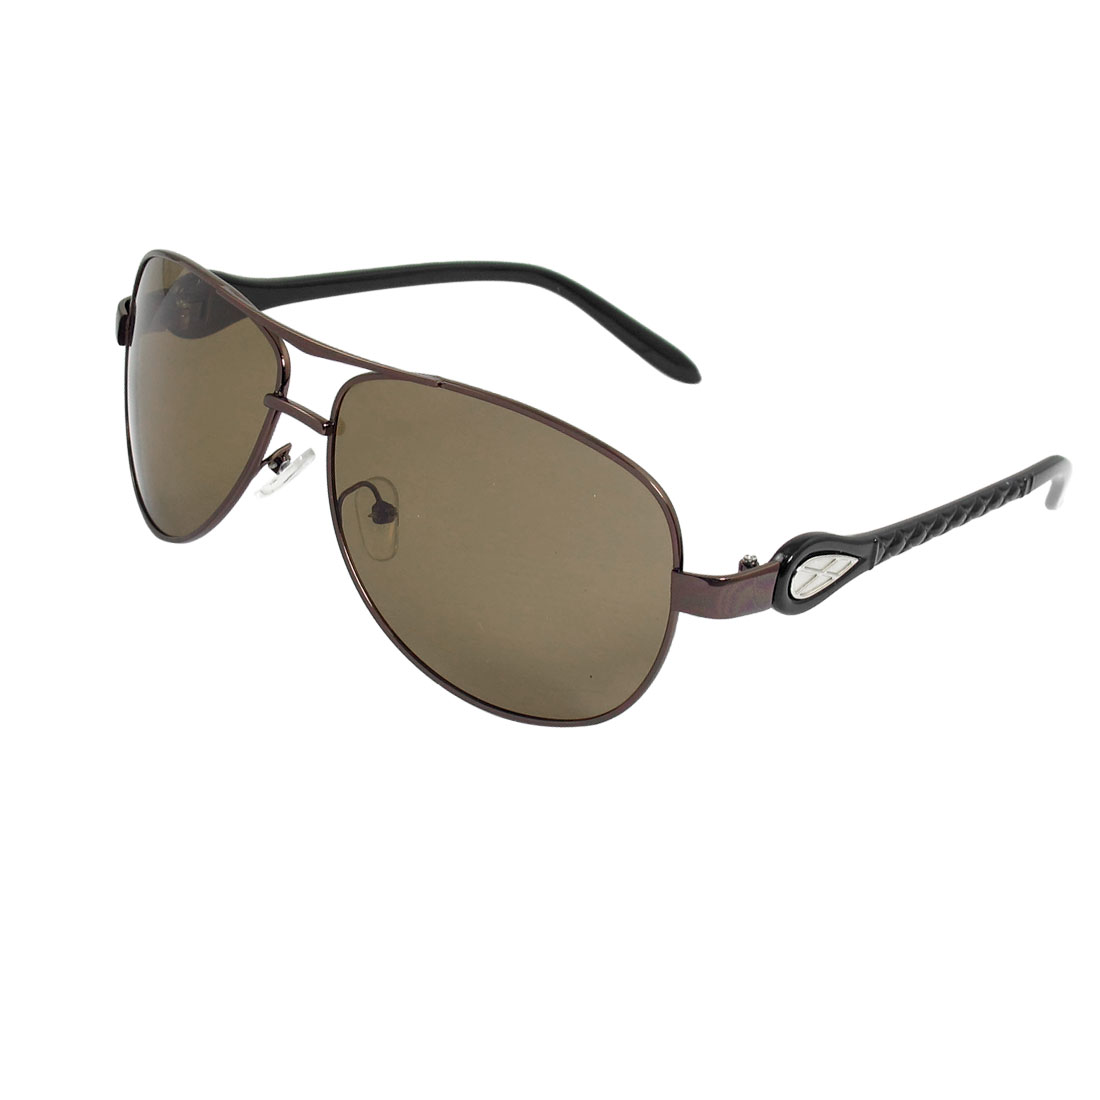 Men Metal Double Bridge Flower Printed Arms Brown Oval Lens Polarized Sunglasses